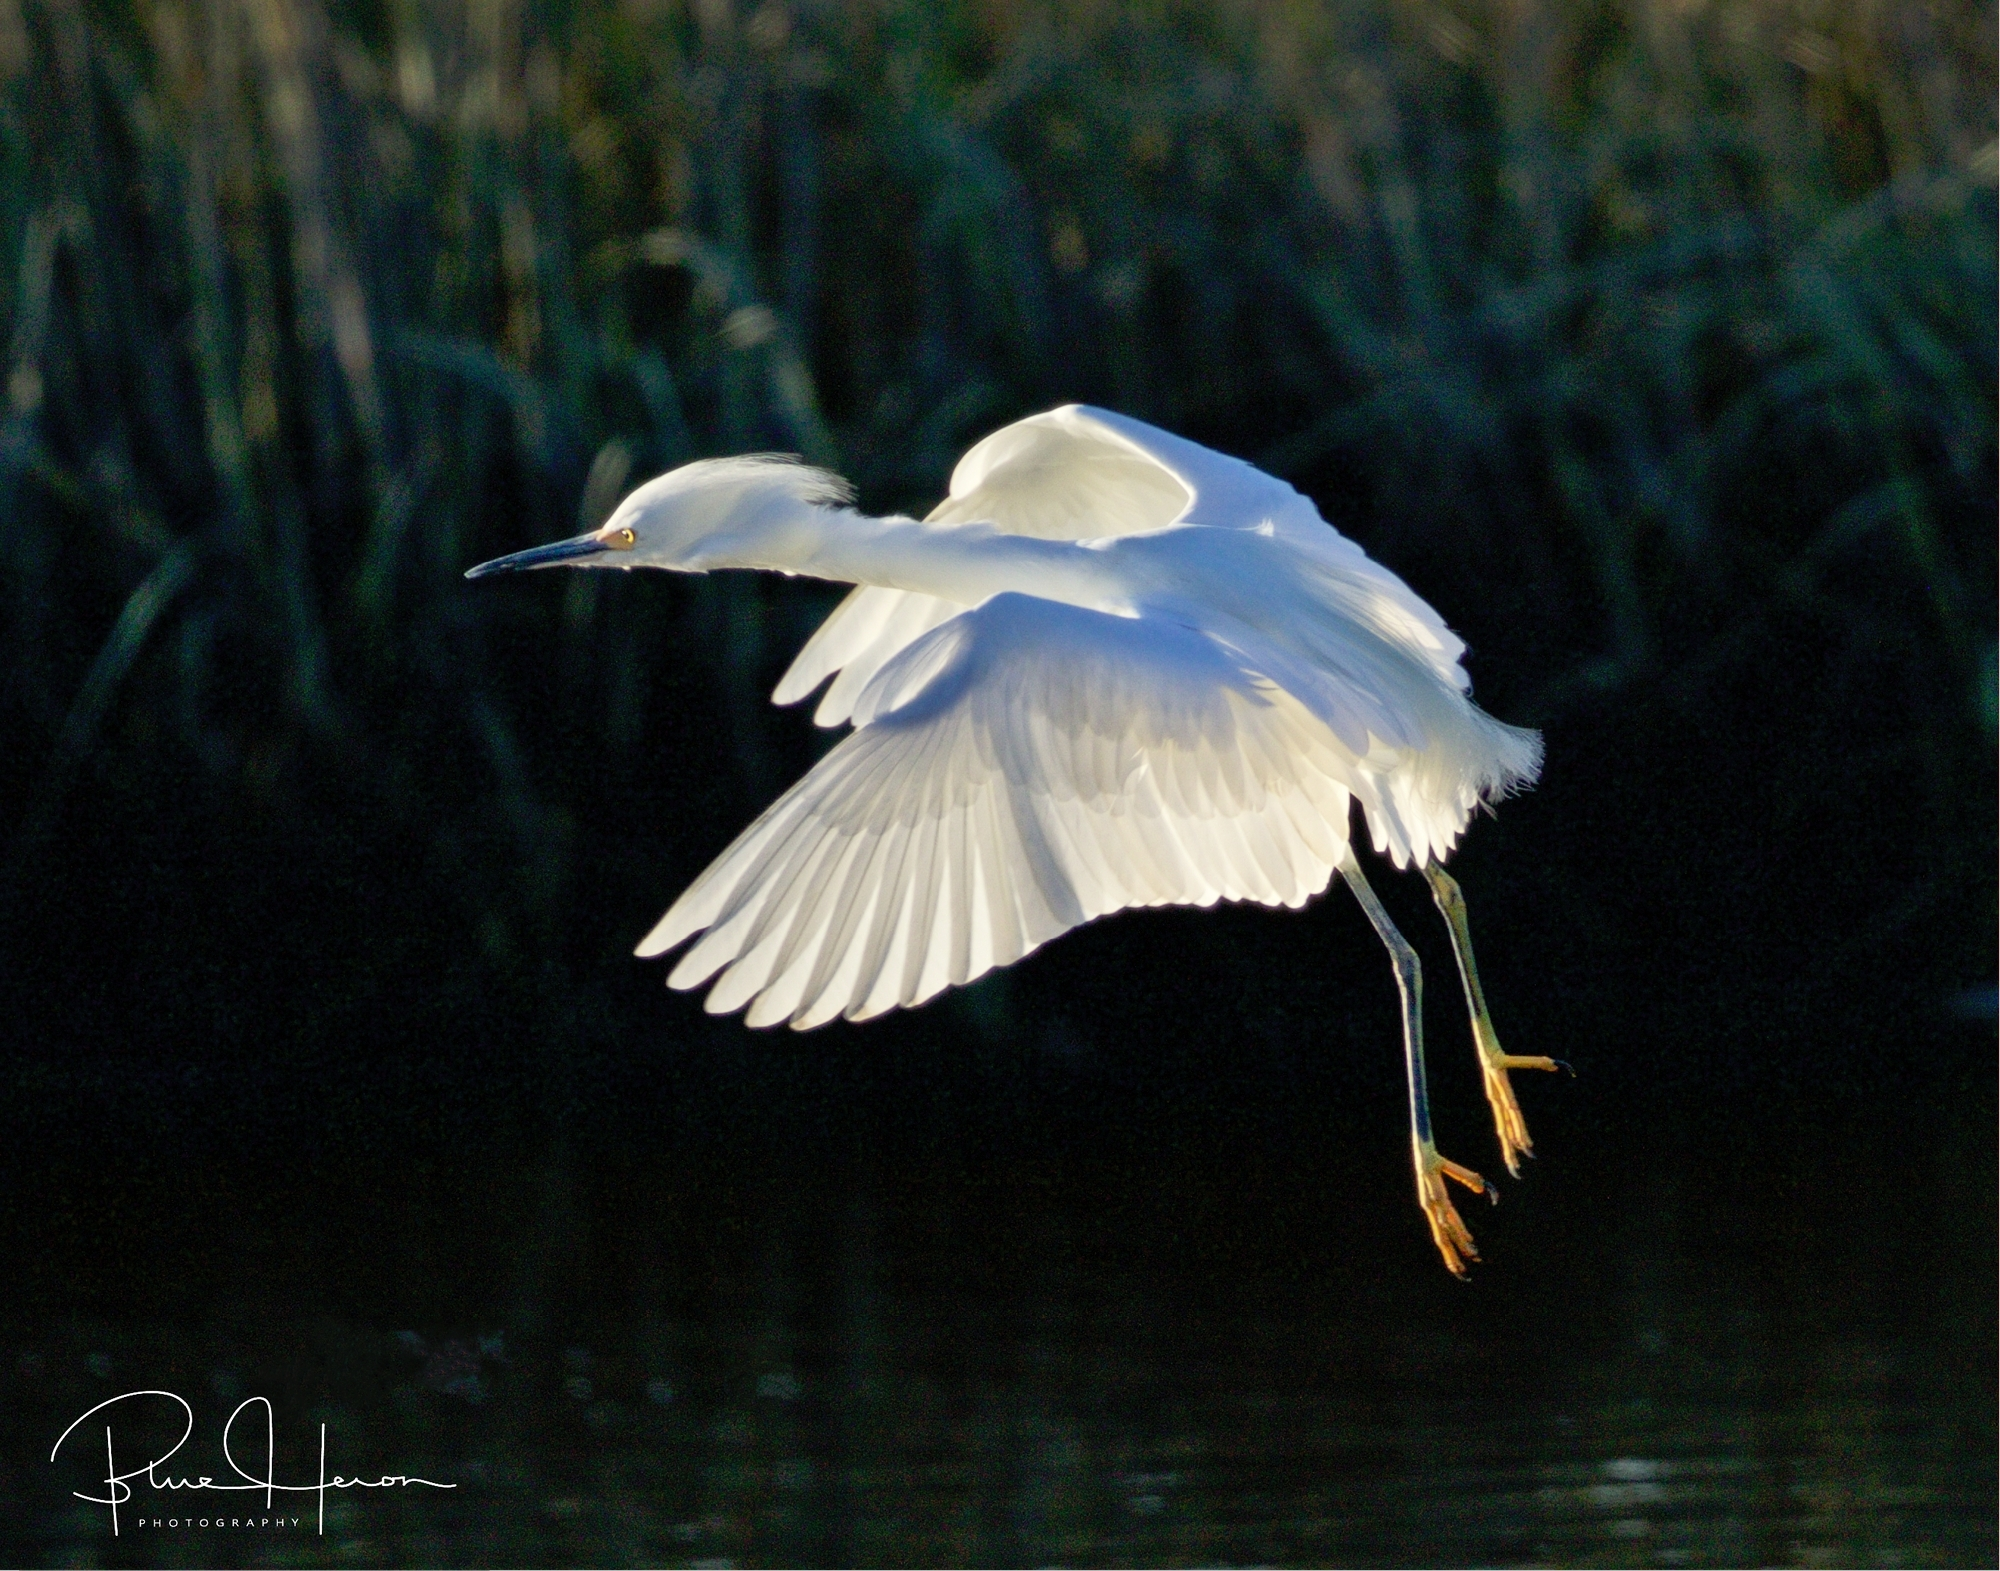 The Snowy Egret flies up to the floating dock...its underwings lit up by the morning sun like an X-ray..